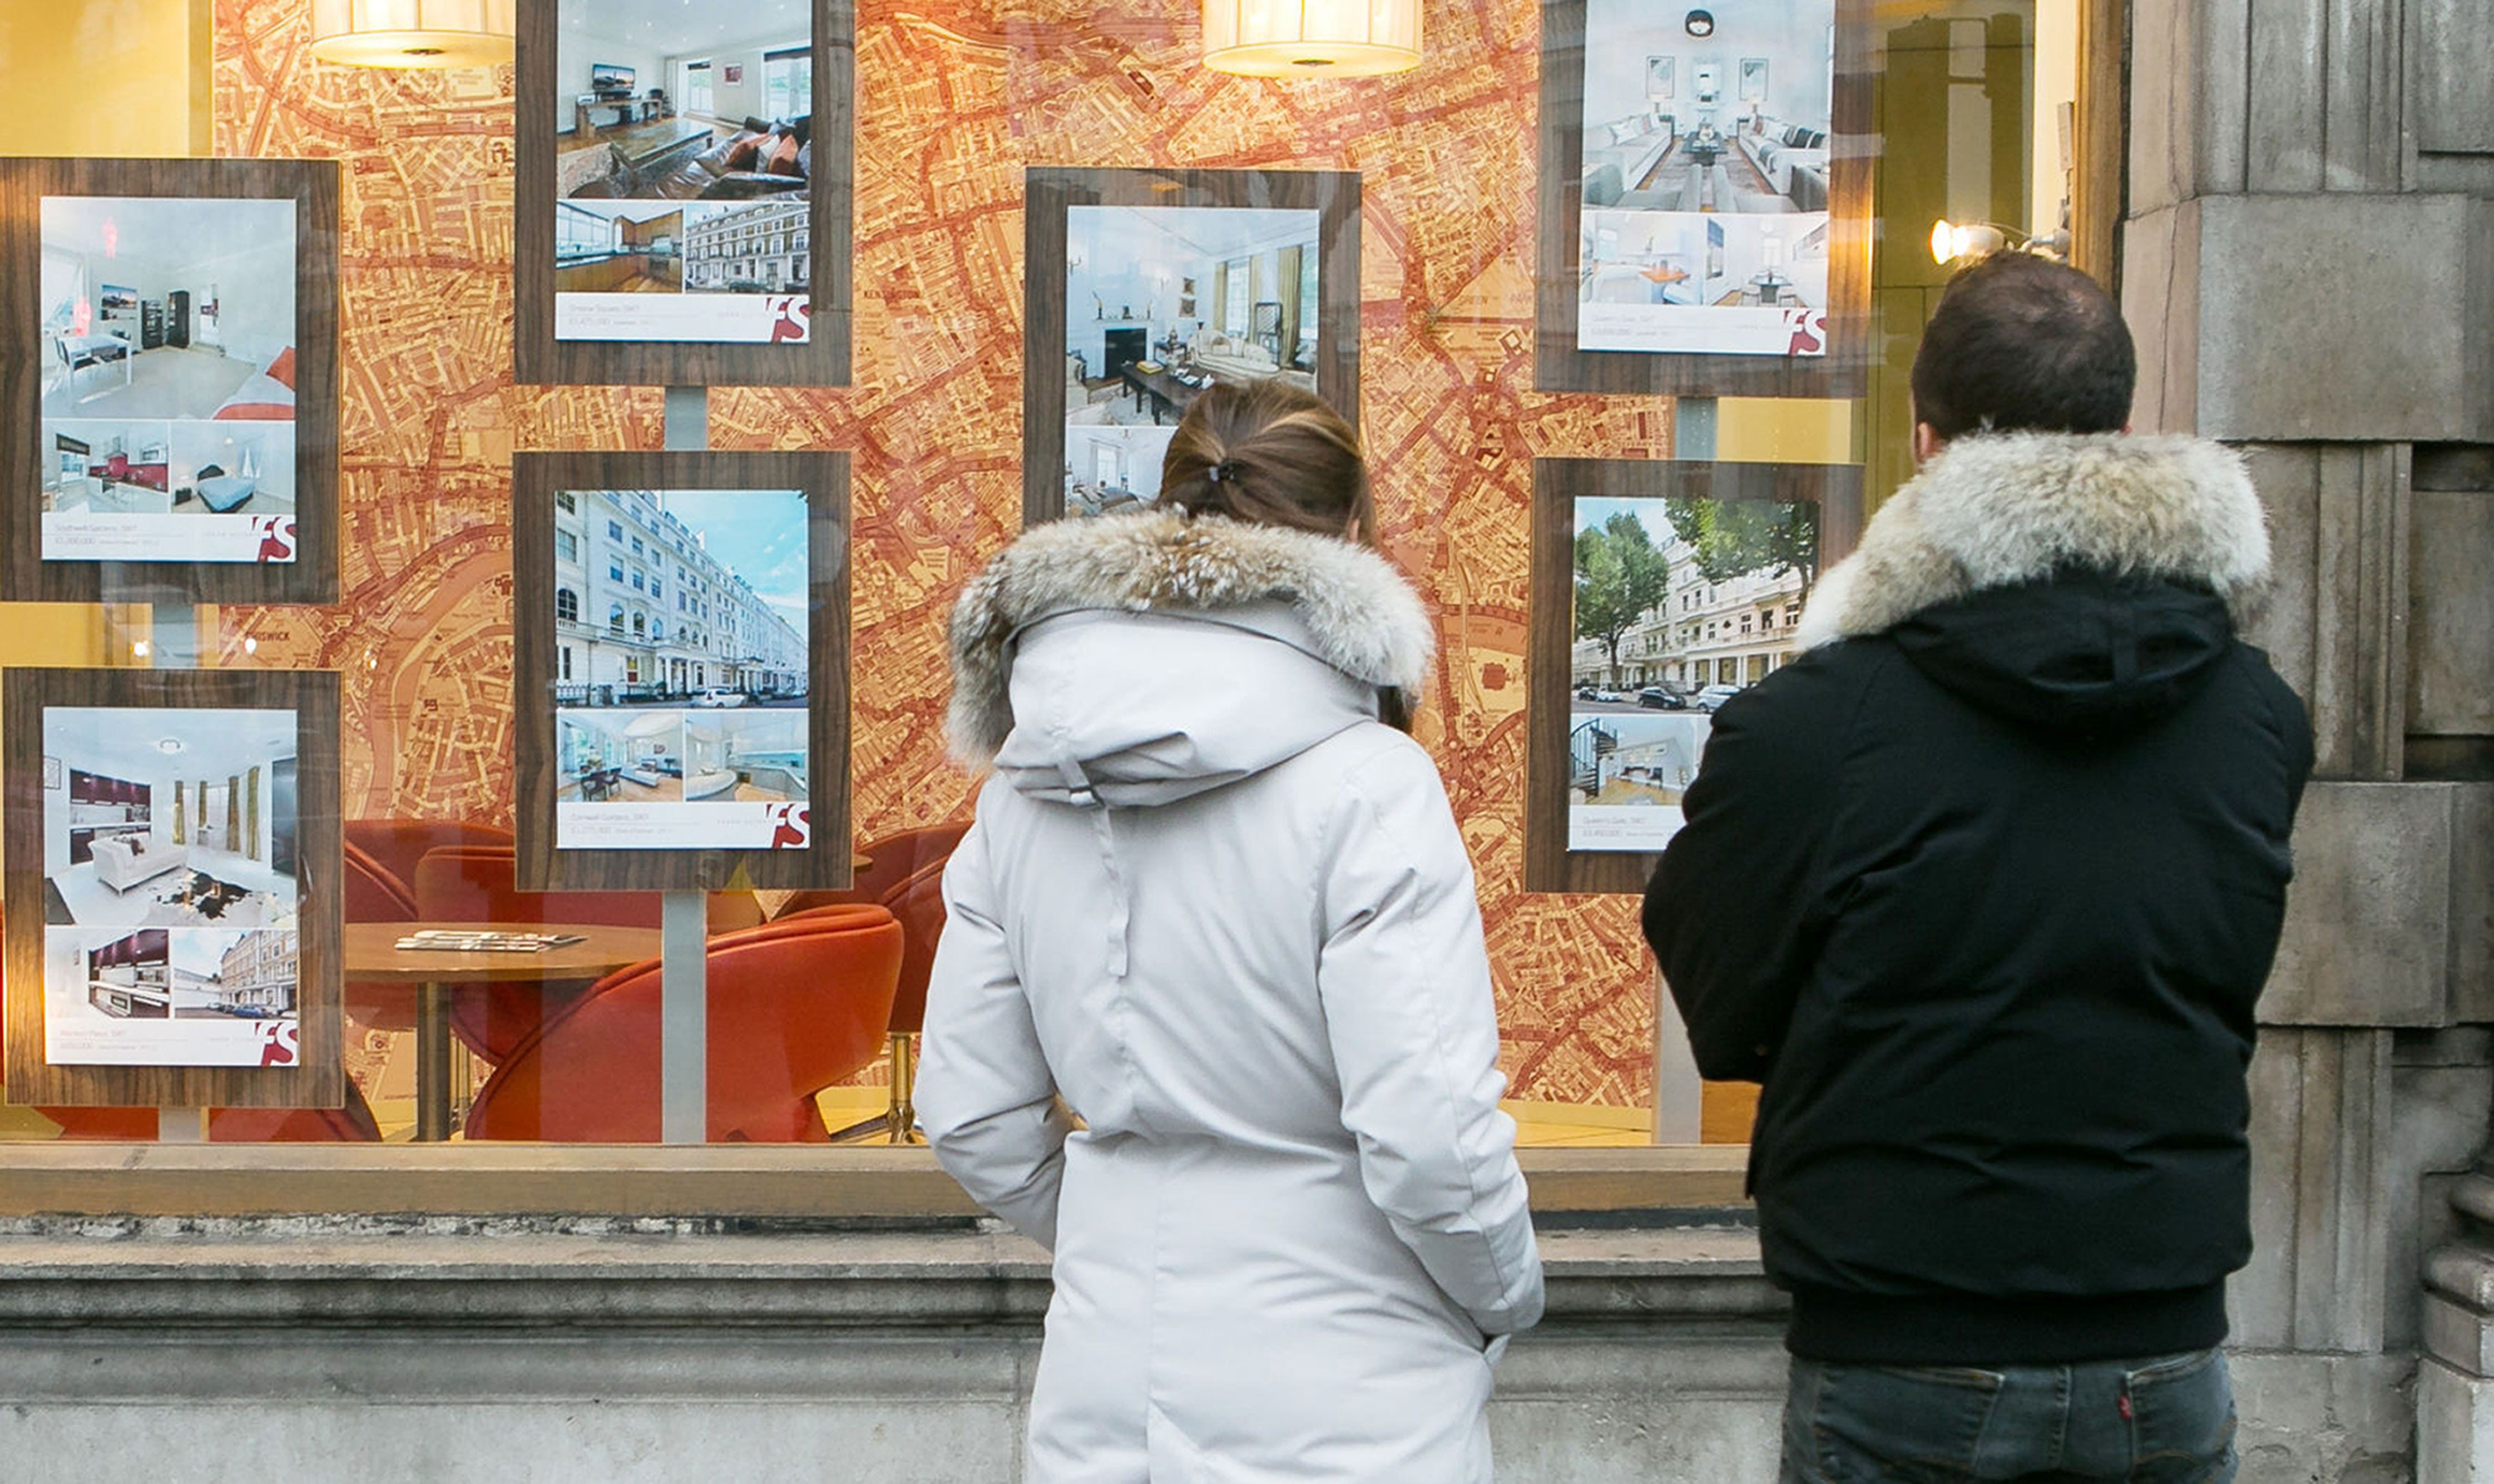 Many young people have been unable to get onto the property